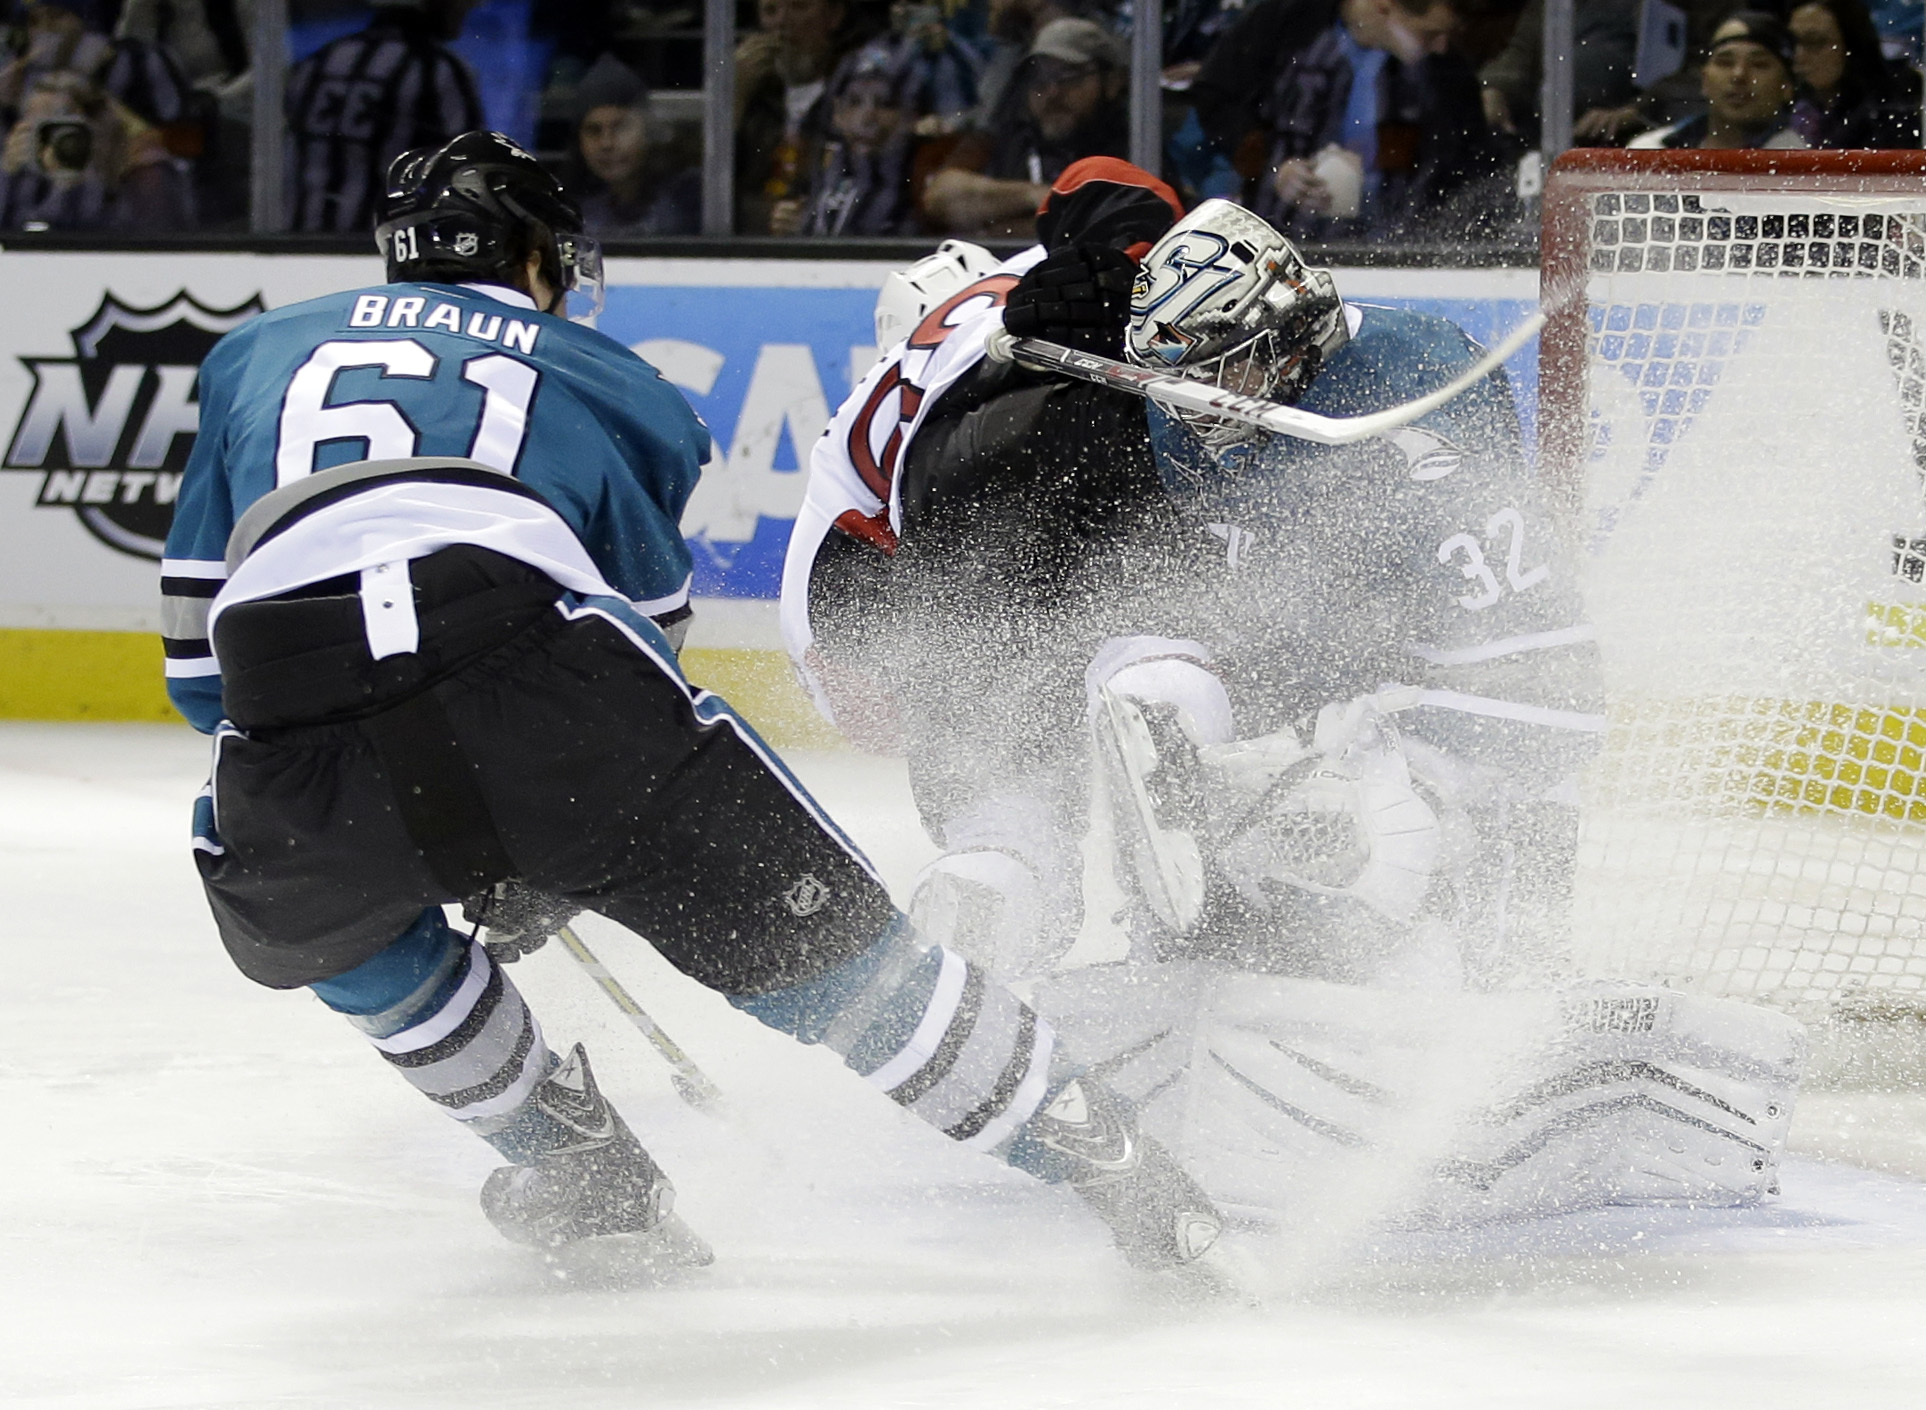 San Jose Sharks goalie Alex Stalock (32) collides with Ottawa Senators' Mike Hoffman, center, as Justin Braun (61) closes in during the second period of an NHL hockey game Monday, Jan. 18, 2016, in San Jose, Calif. (AP Photo/Marcio Jose Sanchez)